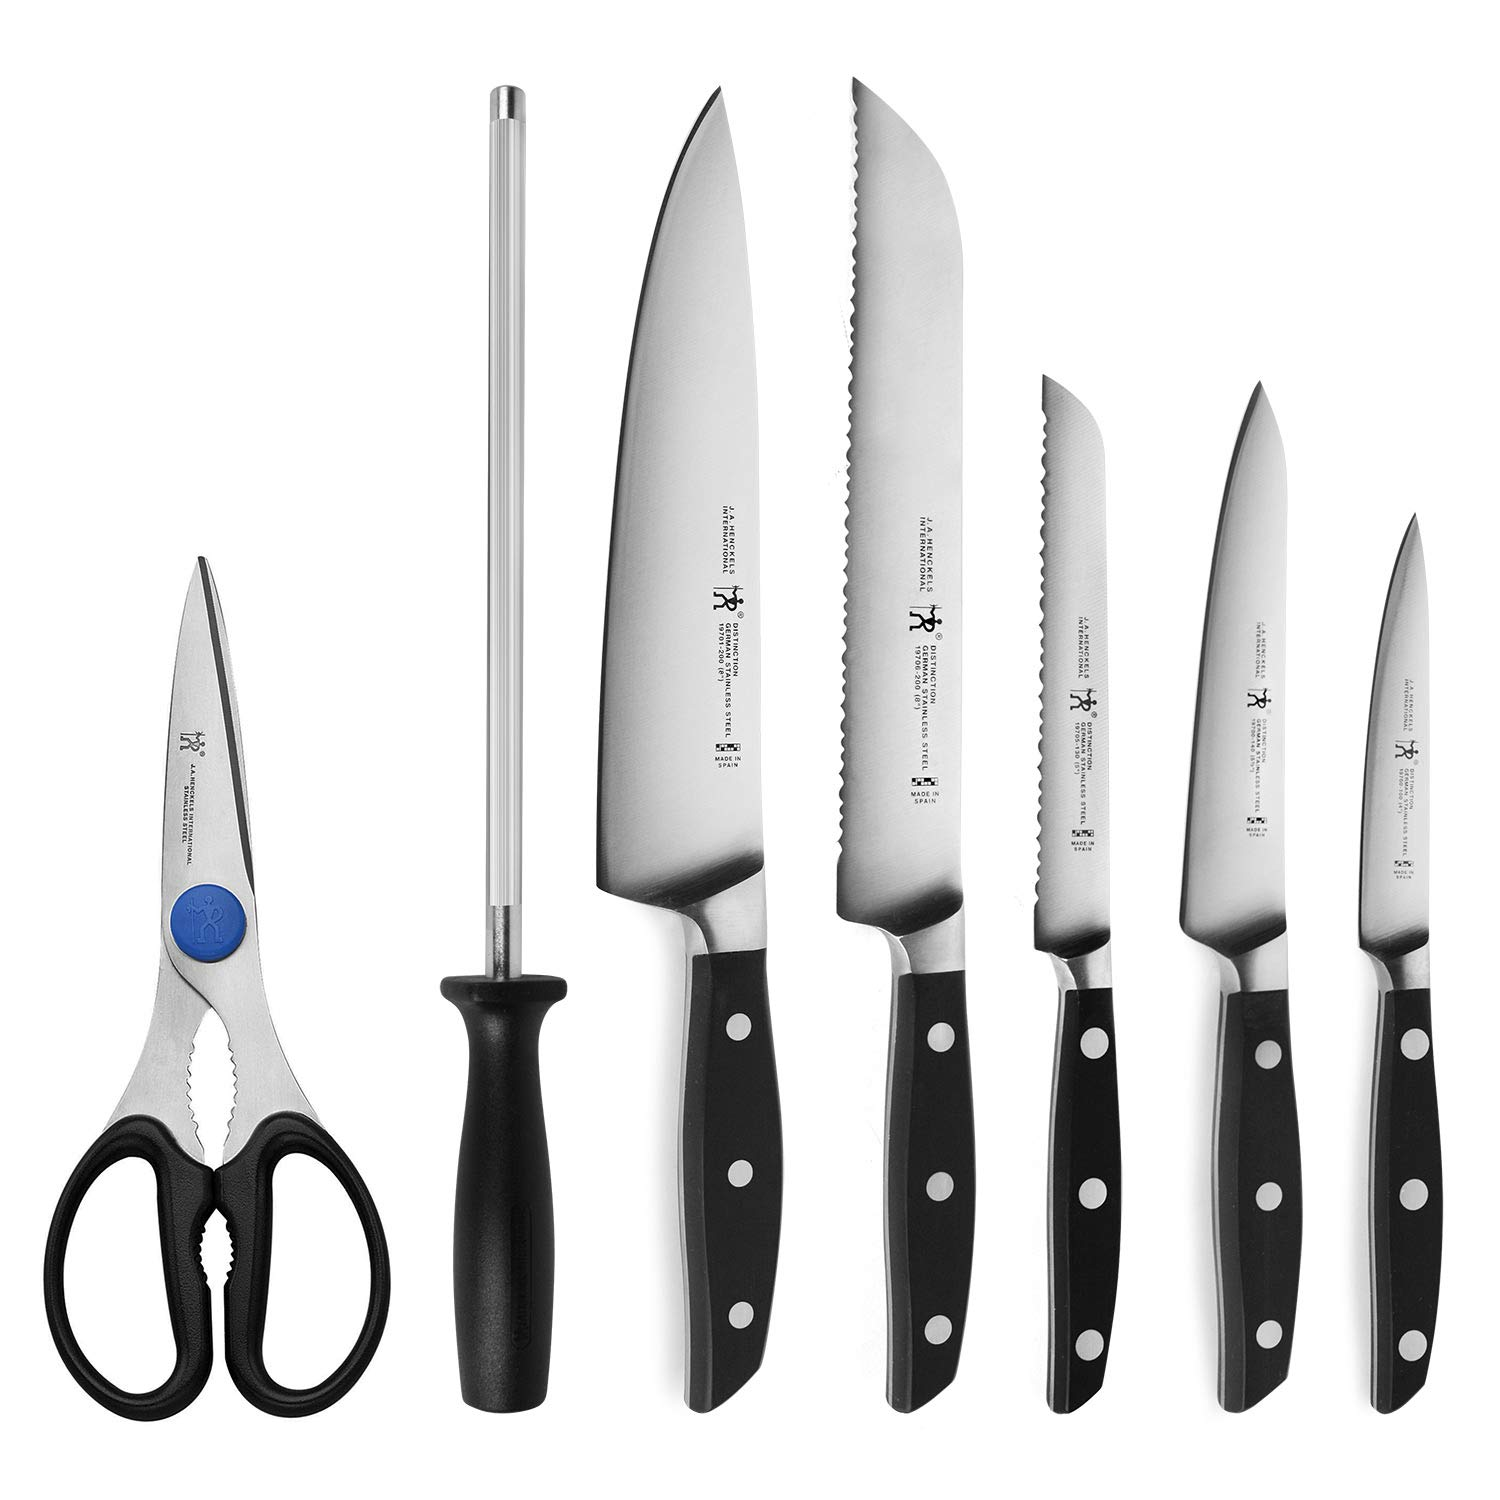 J.A. Henckels International Forged Distinction 14 Piece Knife Block Set by ZWILLING J.A. Henckels (Image #2)